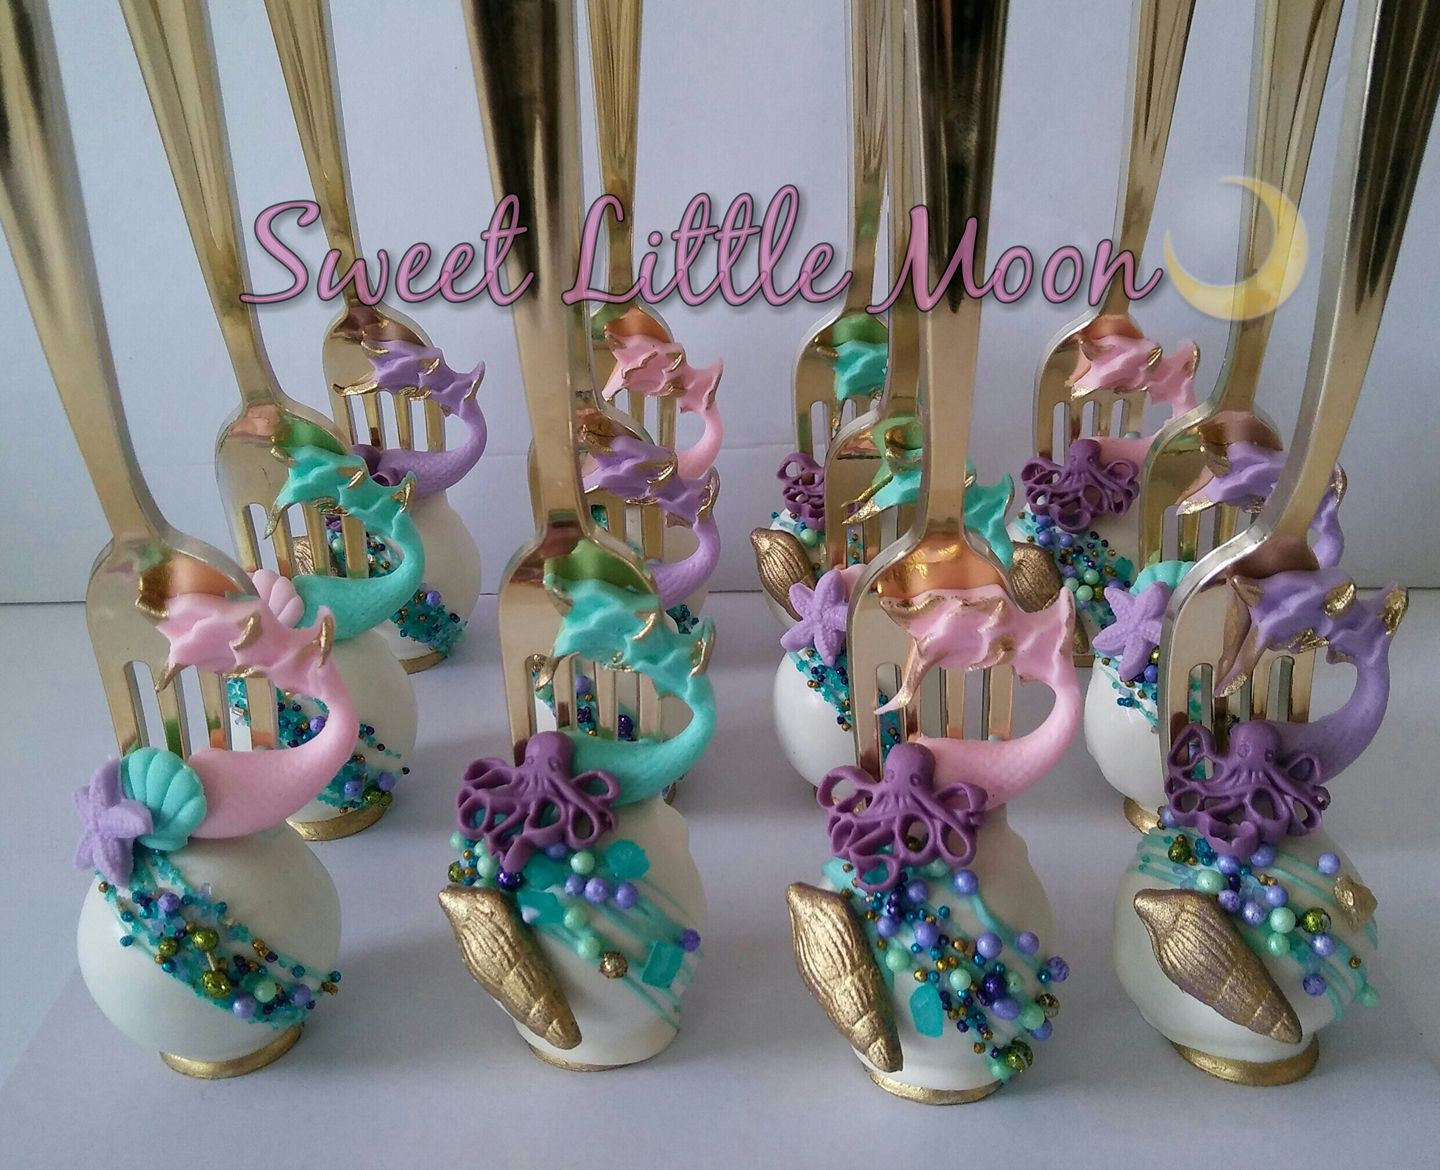 Under The Sea Mermaid Birthday Party-Purple, Pink, Aqua and Gold Color Theme